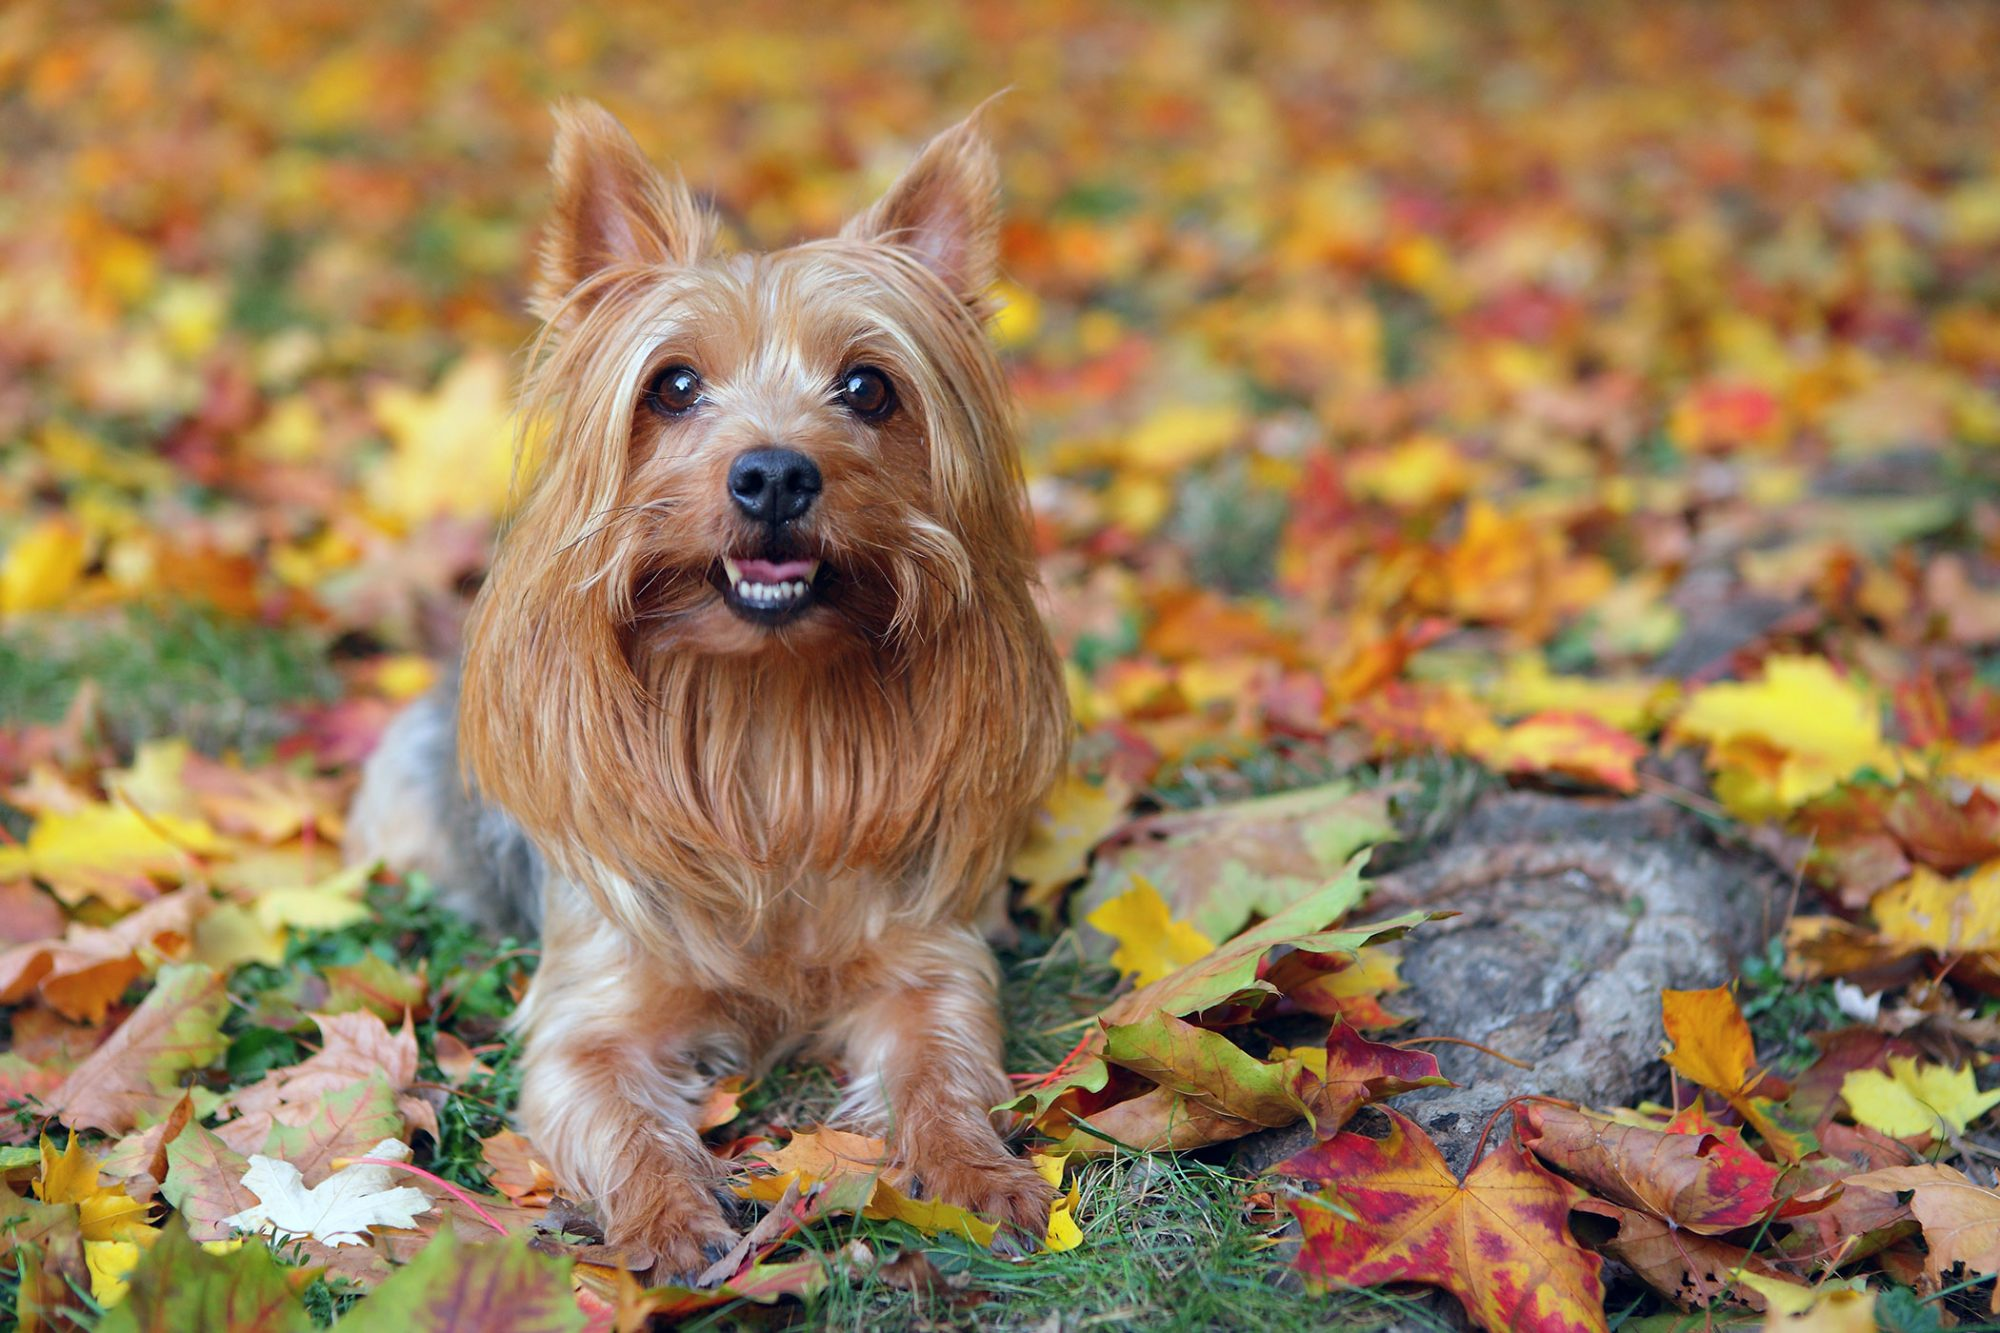 silky terrier with long hair sitting in fall leaves